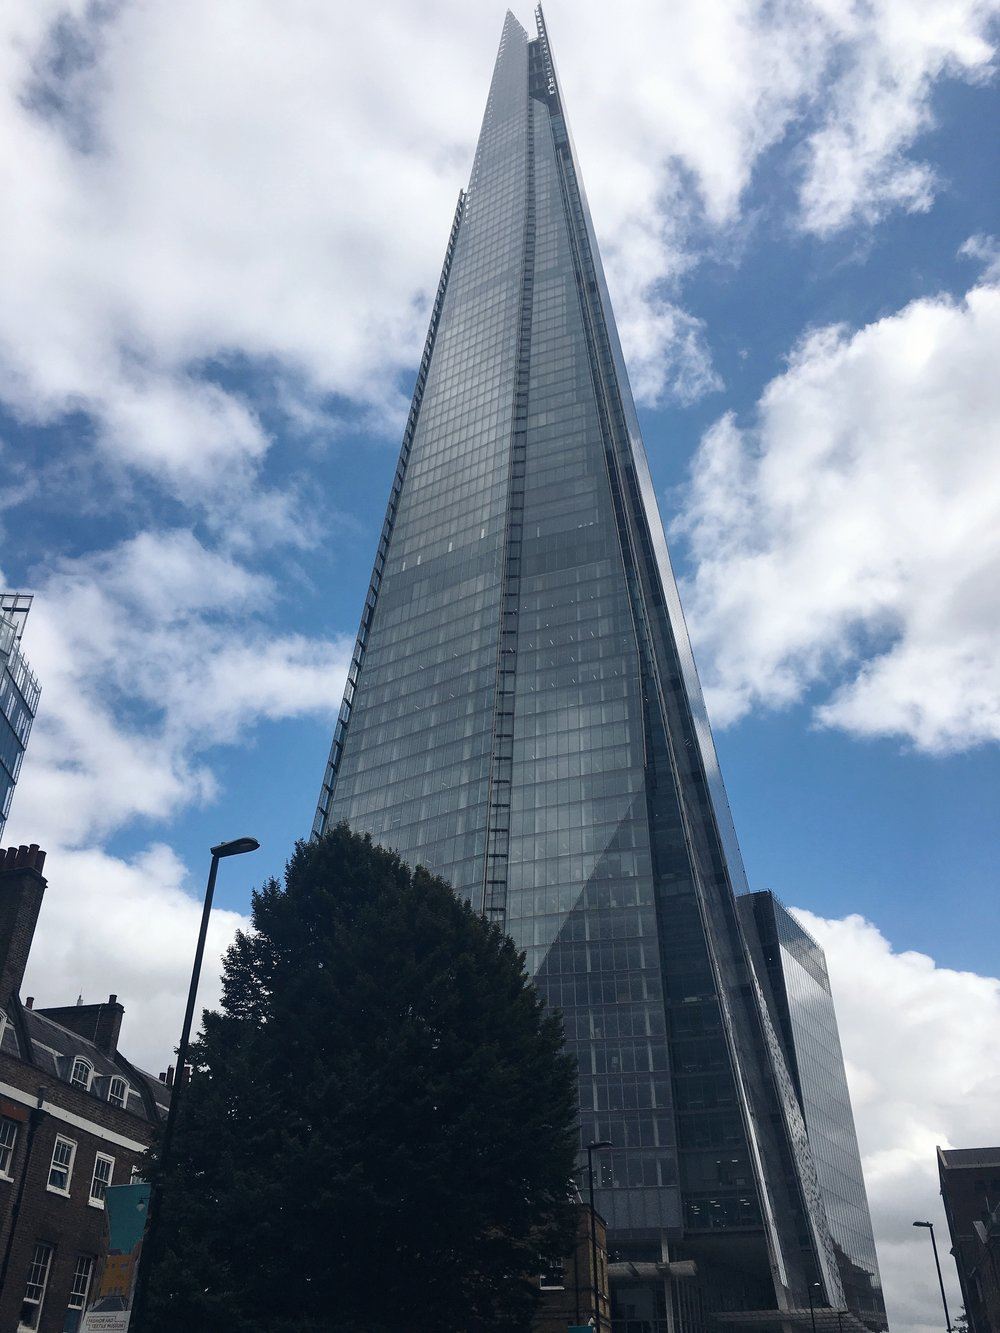 My office - The Shard, 32 London Bridge Street. A little bigger than the buildings in NZ..